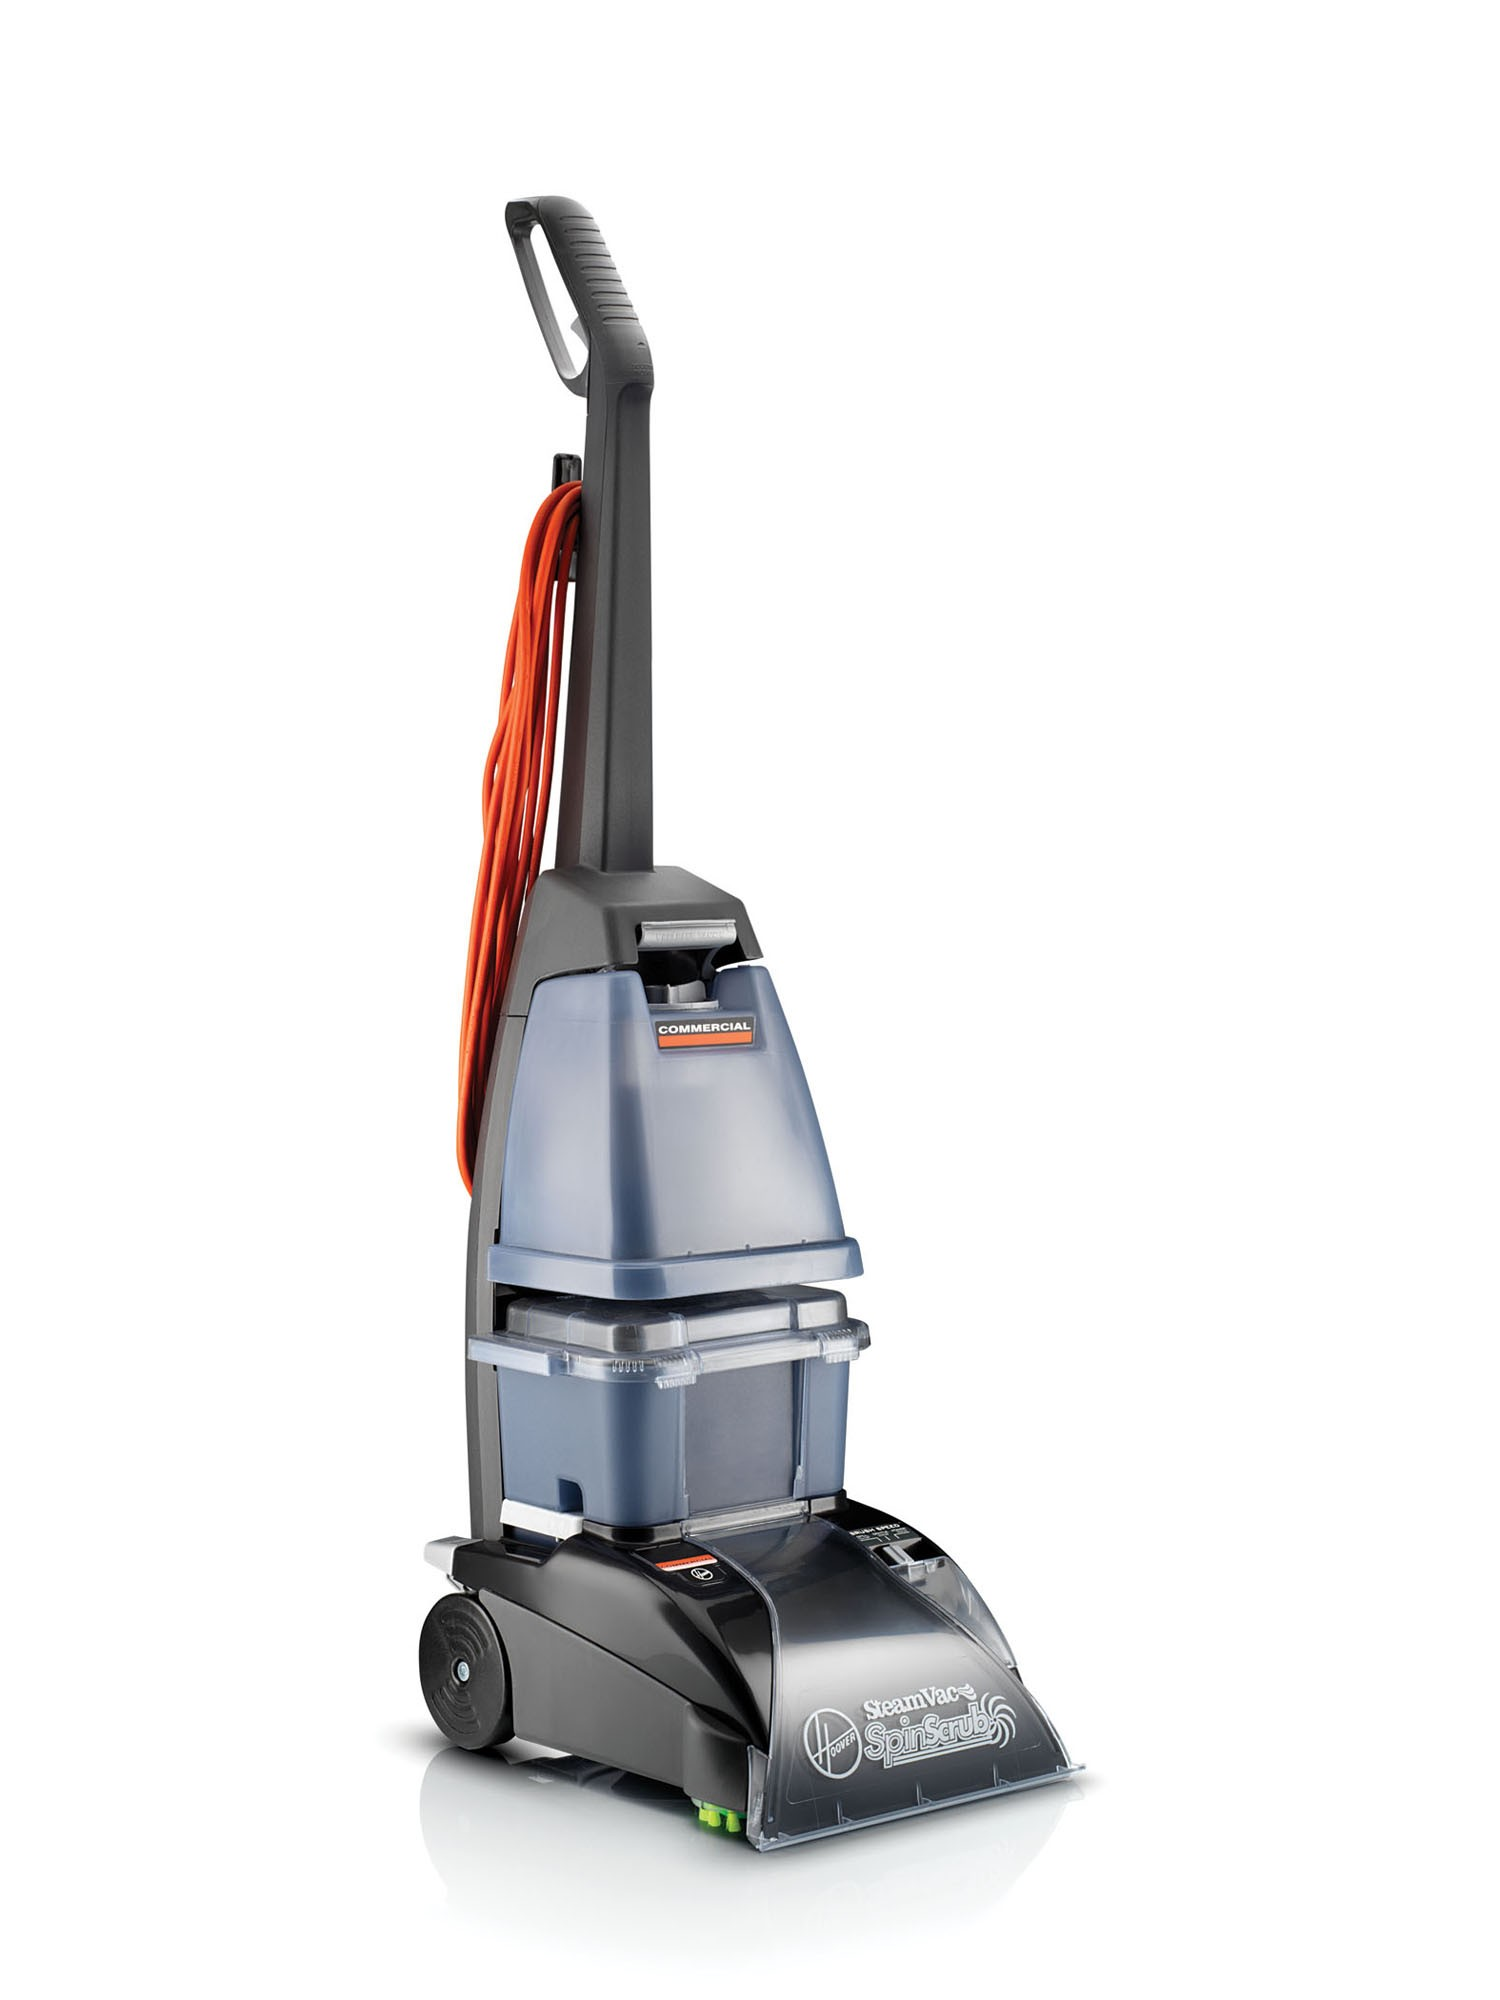 hight resolution of hoover commercial spotter carpet cleaner right angle